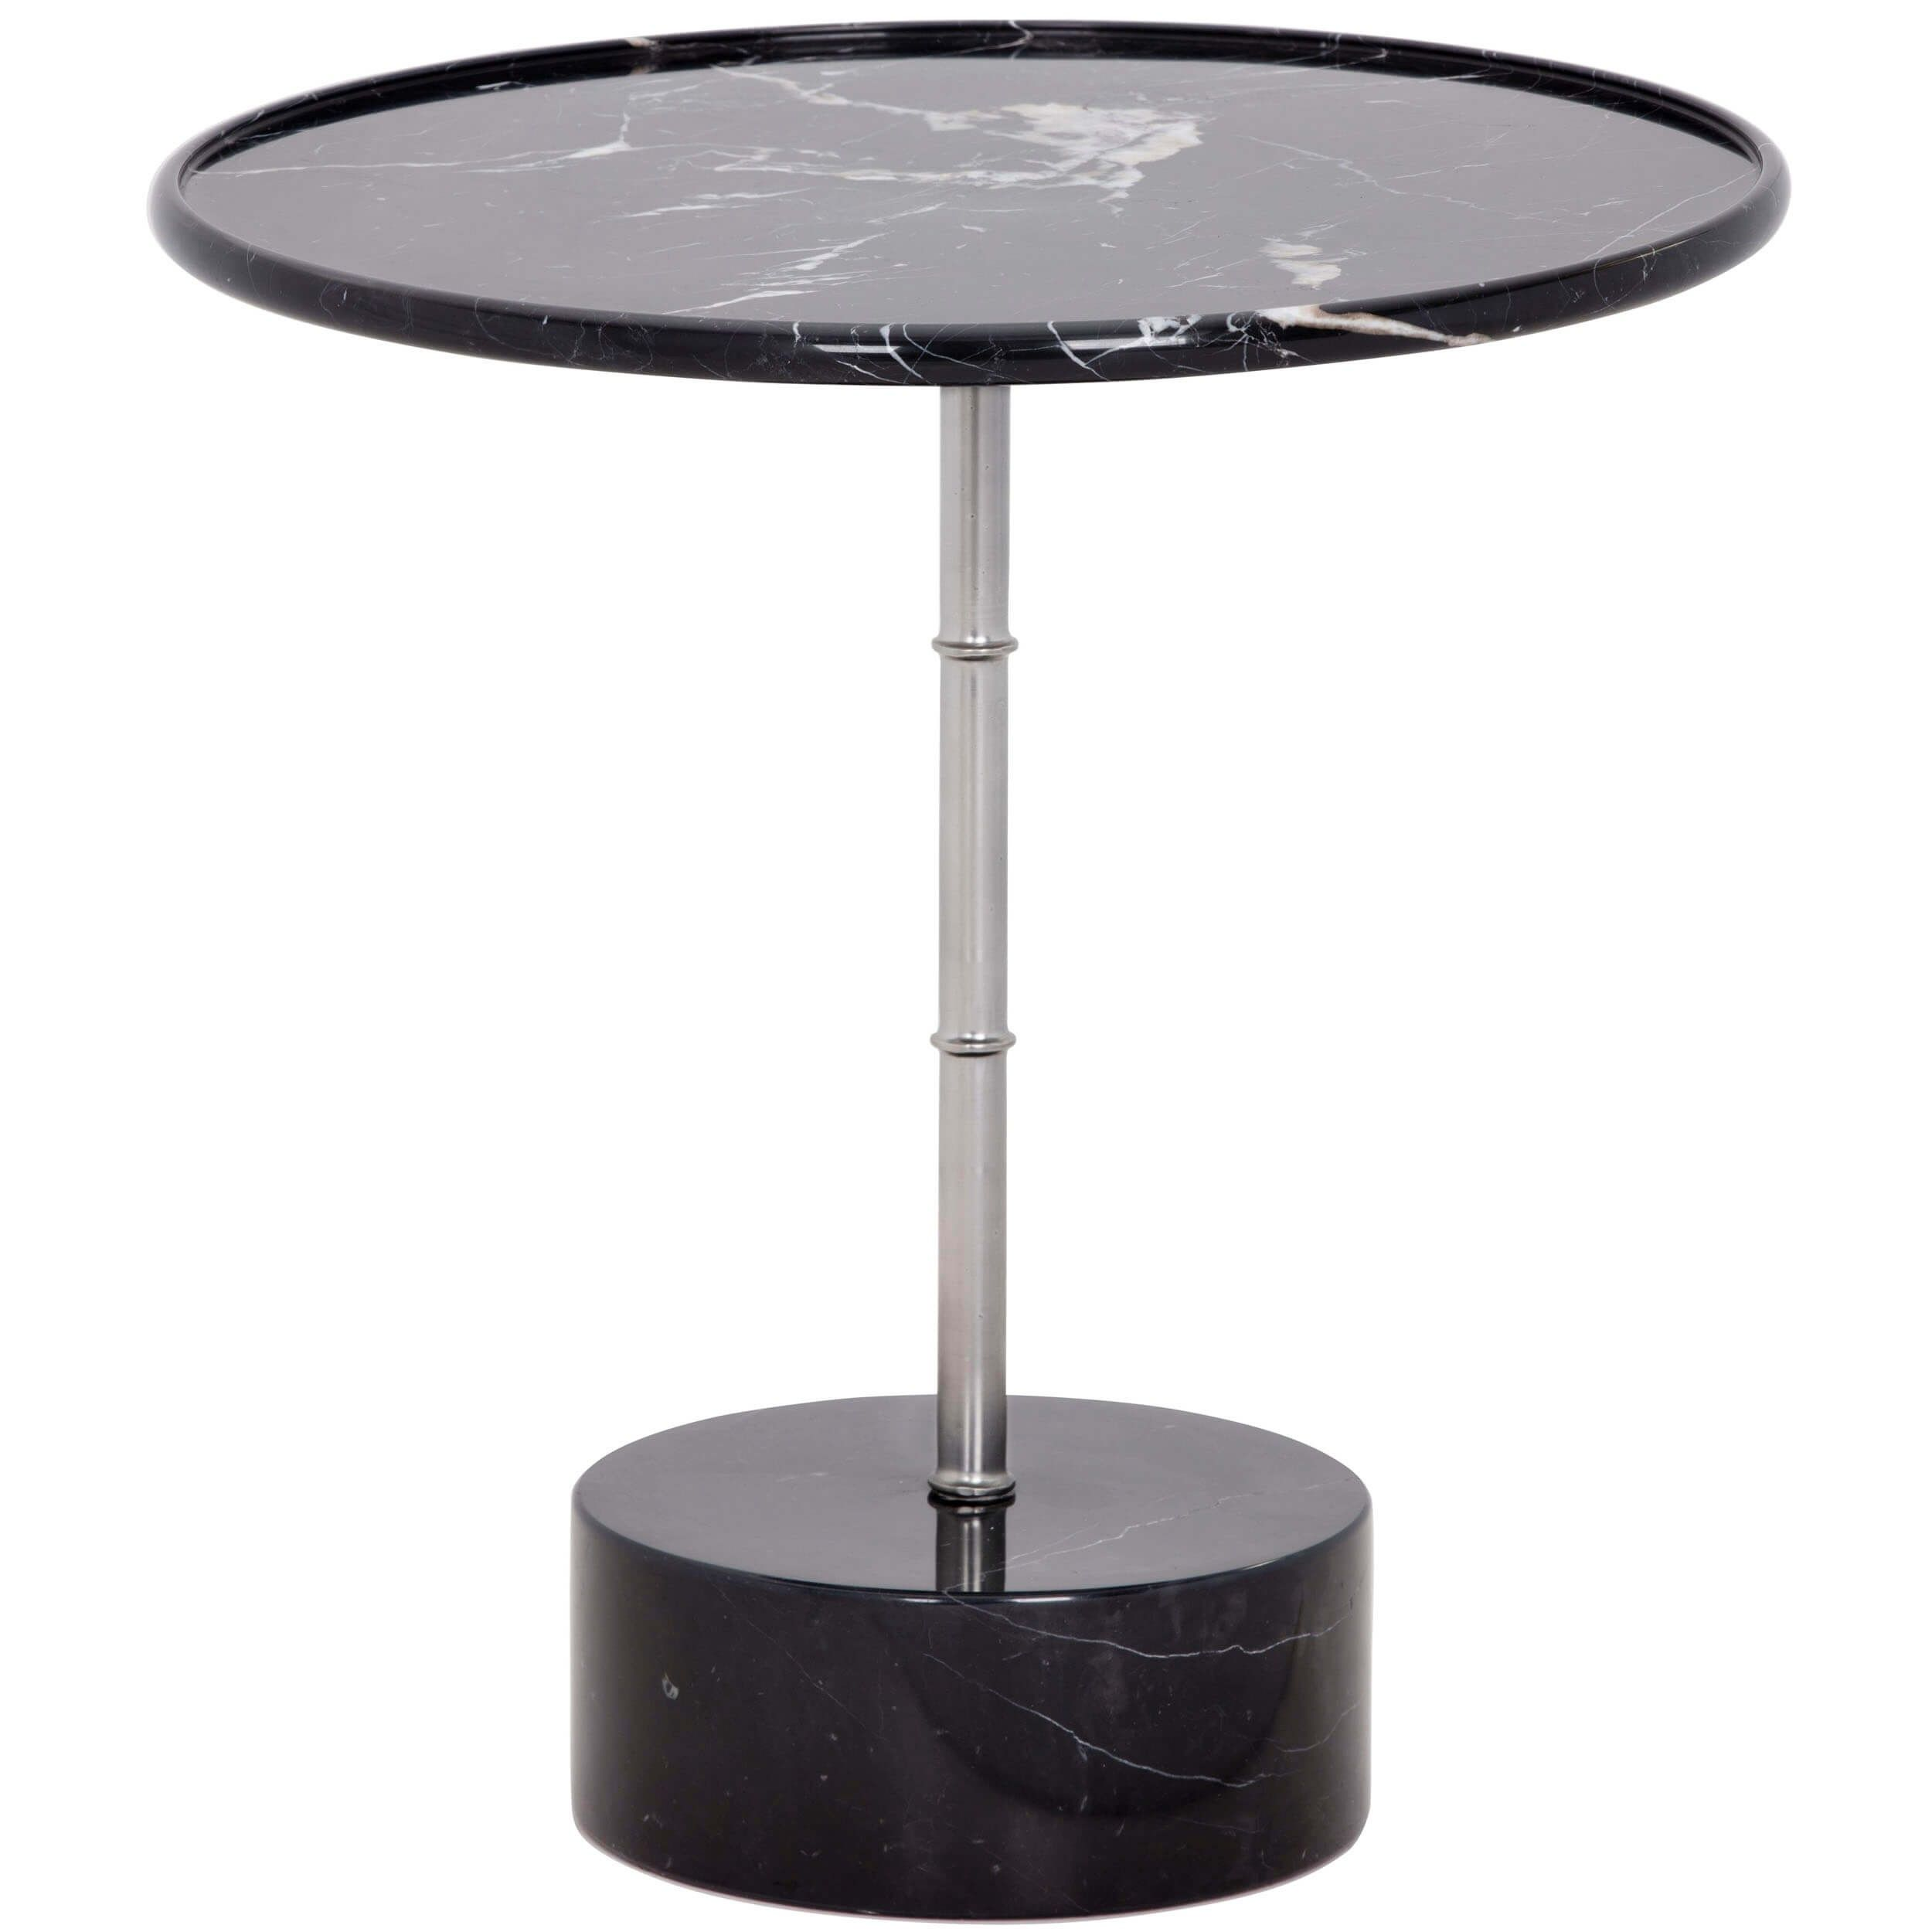 milano side table black marble accent tables furniture perspex coffee nest narrow console with shelves target media cabinet round glass lamp kids bedside lacquer mirror frame